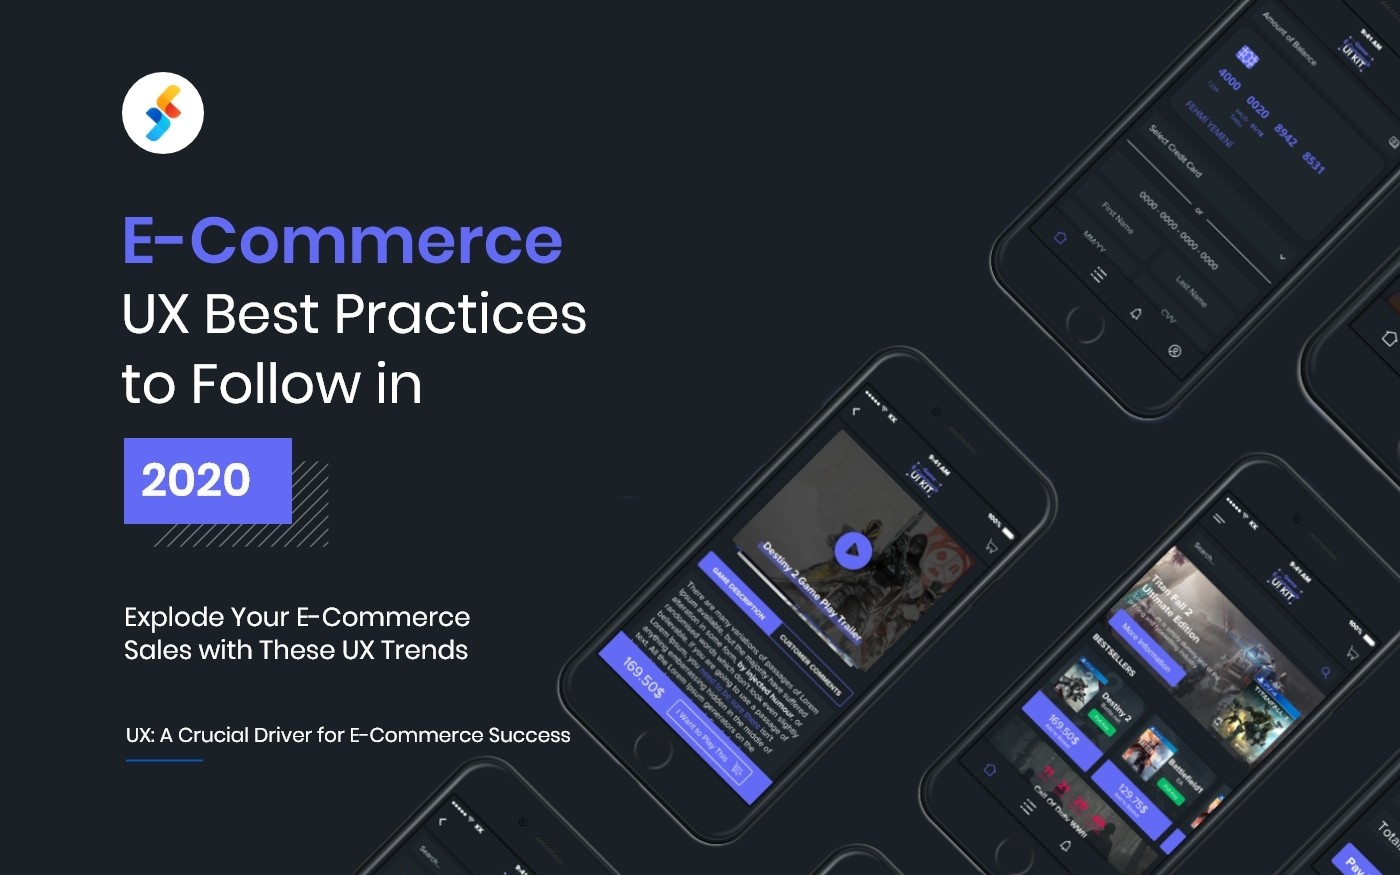 Explode Your E-CommerceSales with These UX Trends 2020